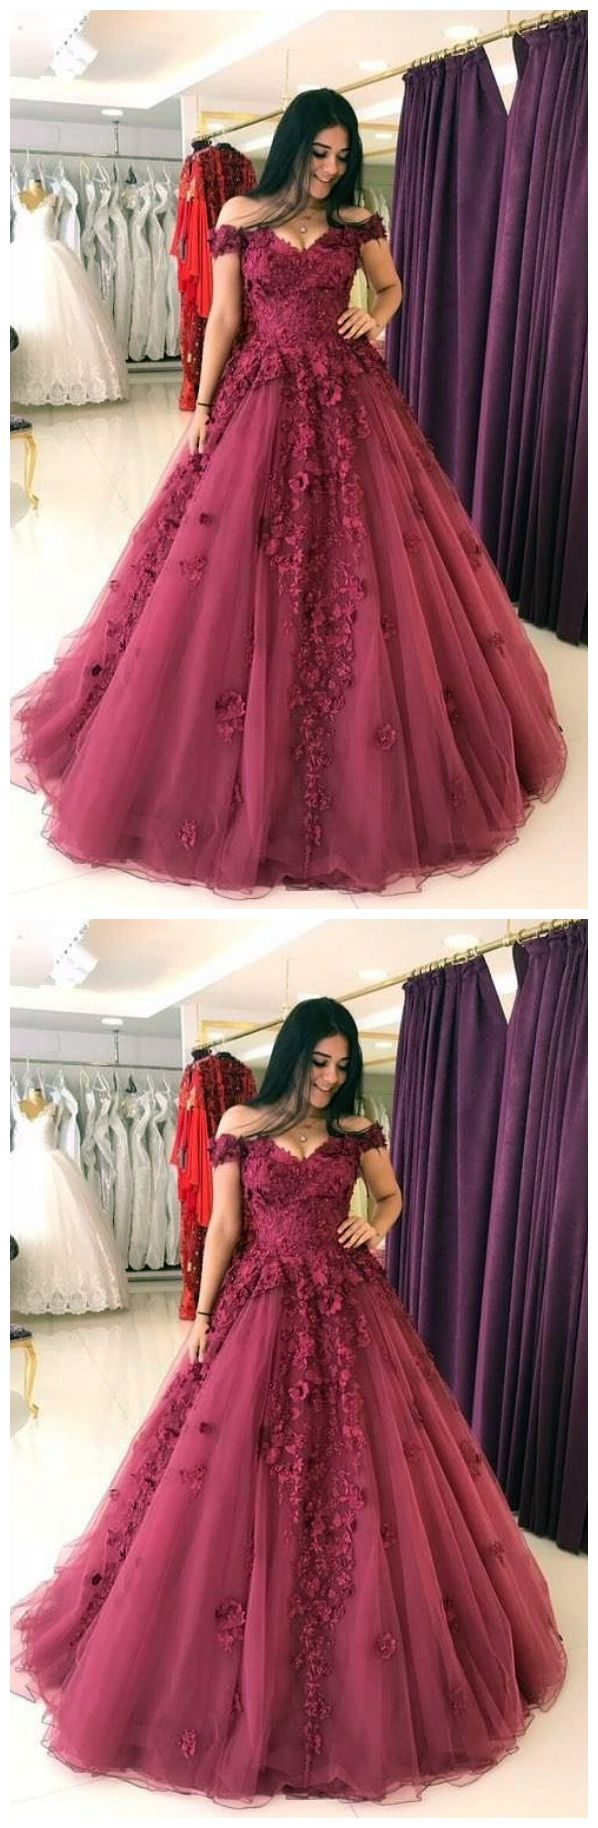 best gowns that sparkle images on pinterest ball gown